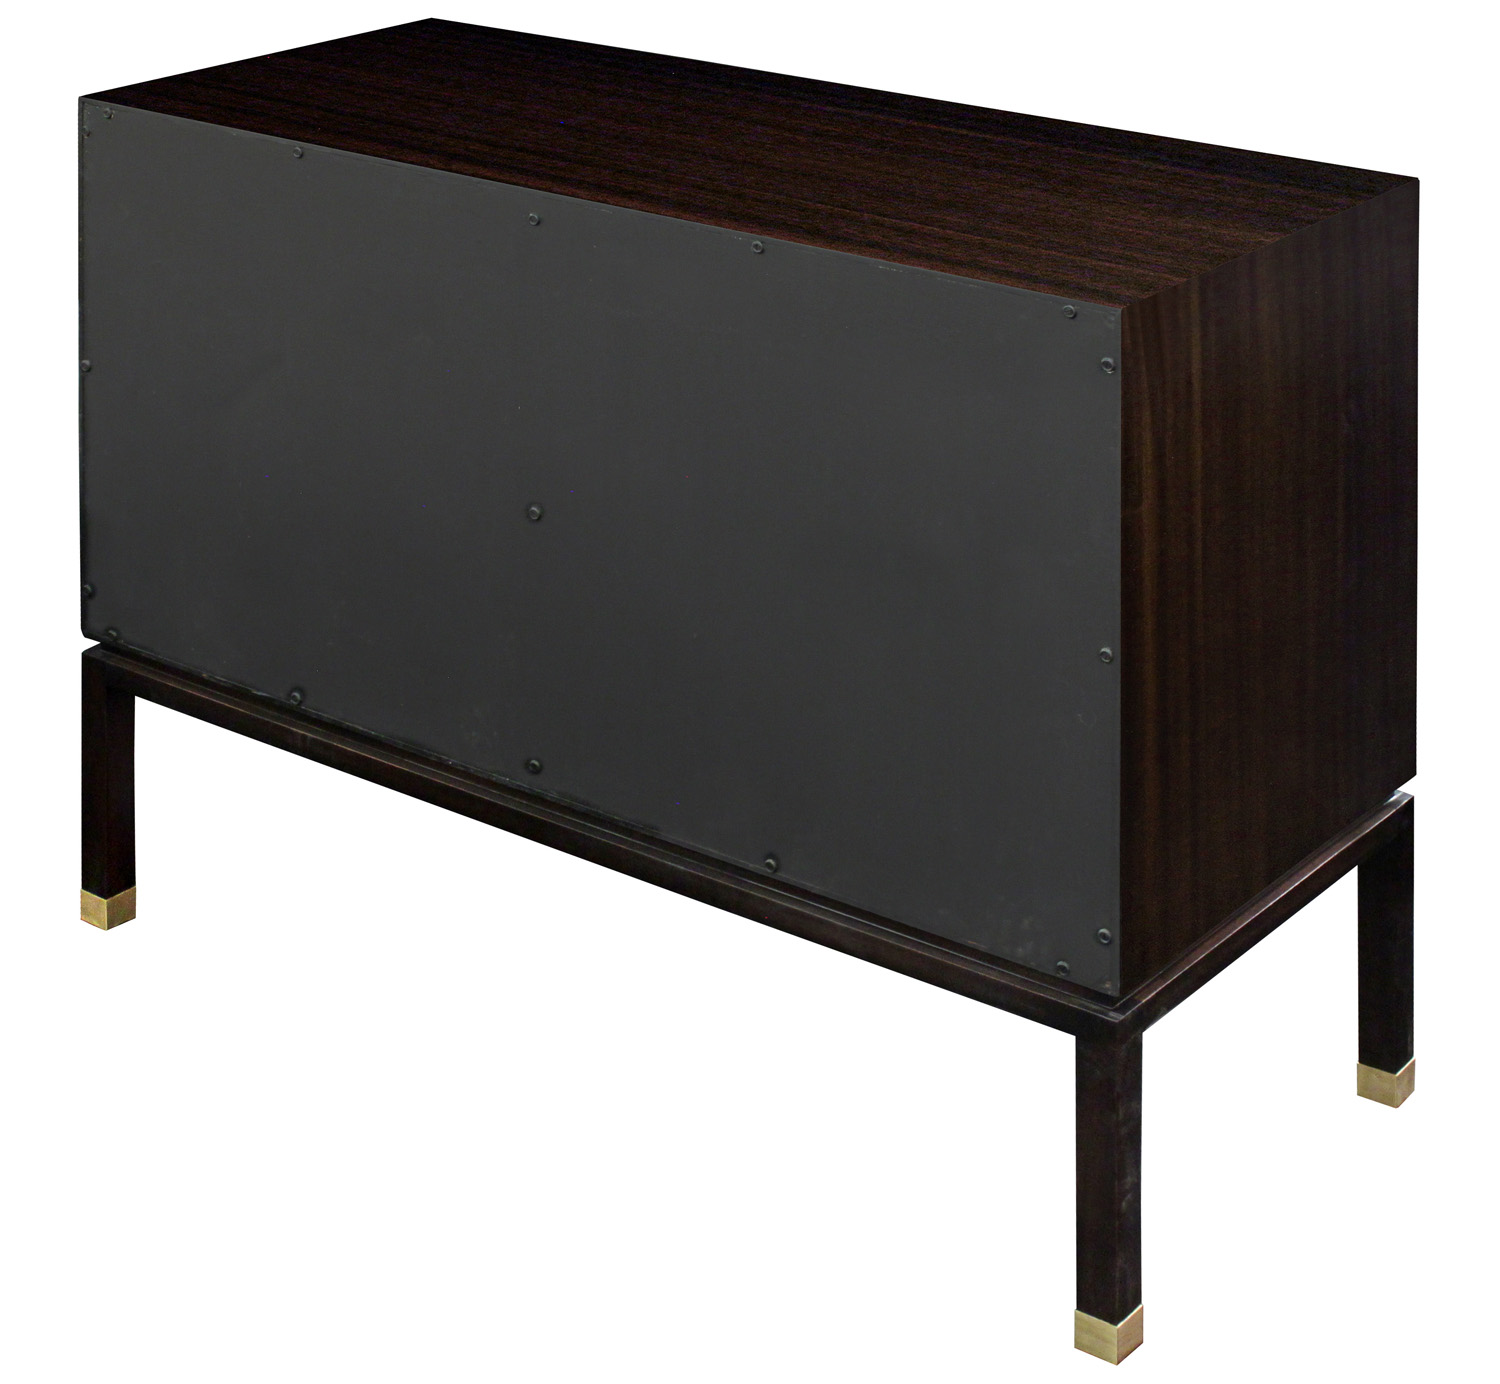 Probber 95 2dr w6sides leather cabinet42 detail6 hires.jpg